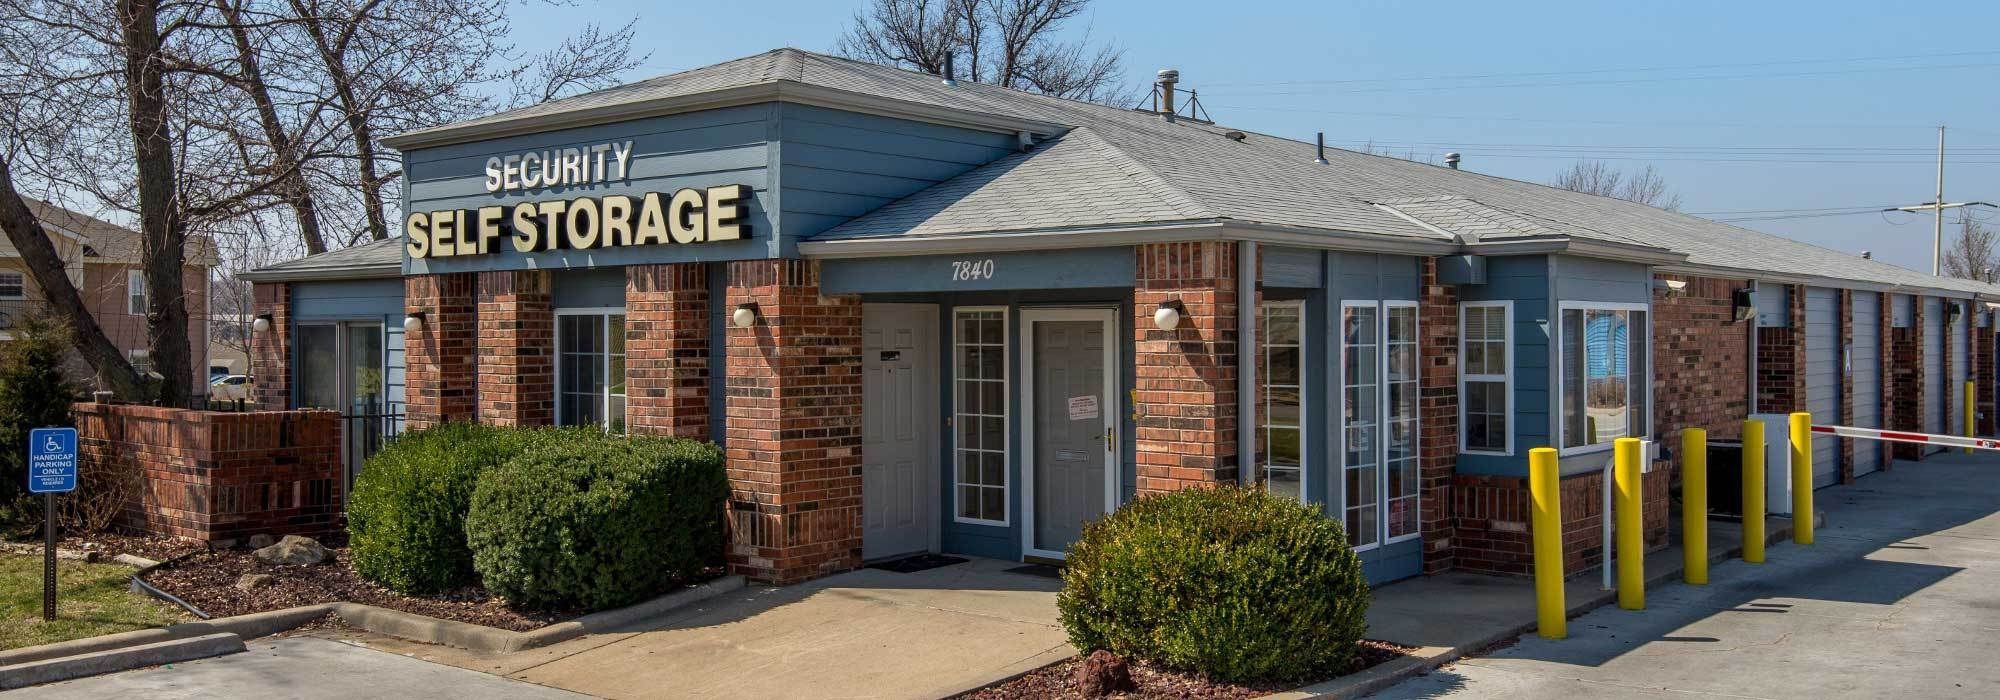 Self storage Exterior in Overland Park KS